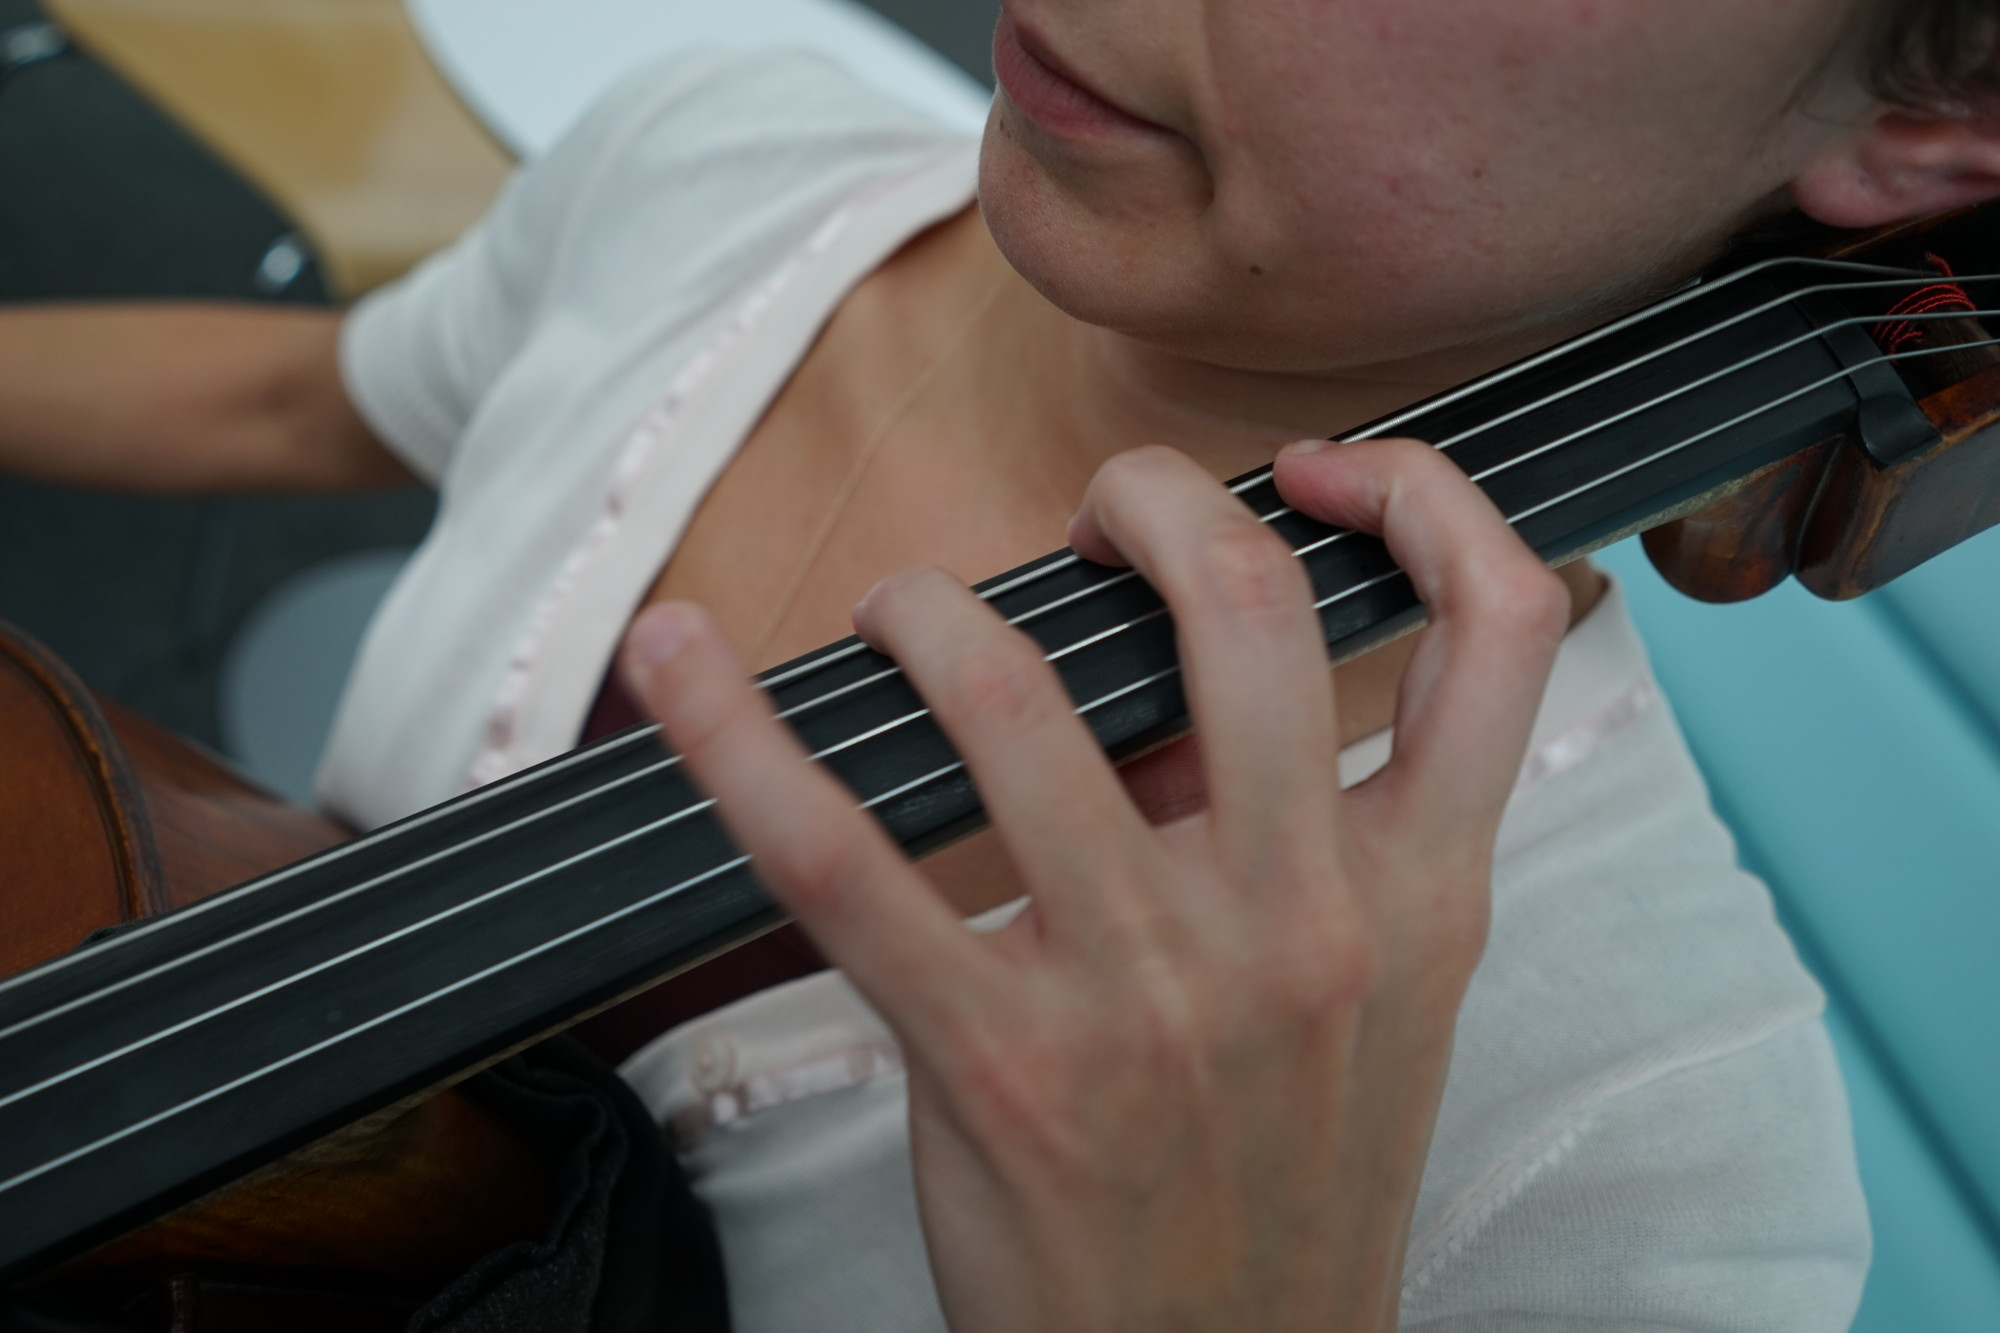 The neck and fingerboard. This is what controls the notes on the cello along with the movement of the bow.